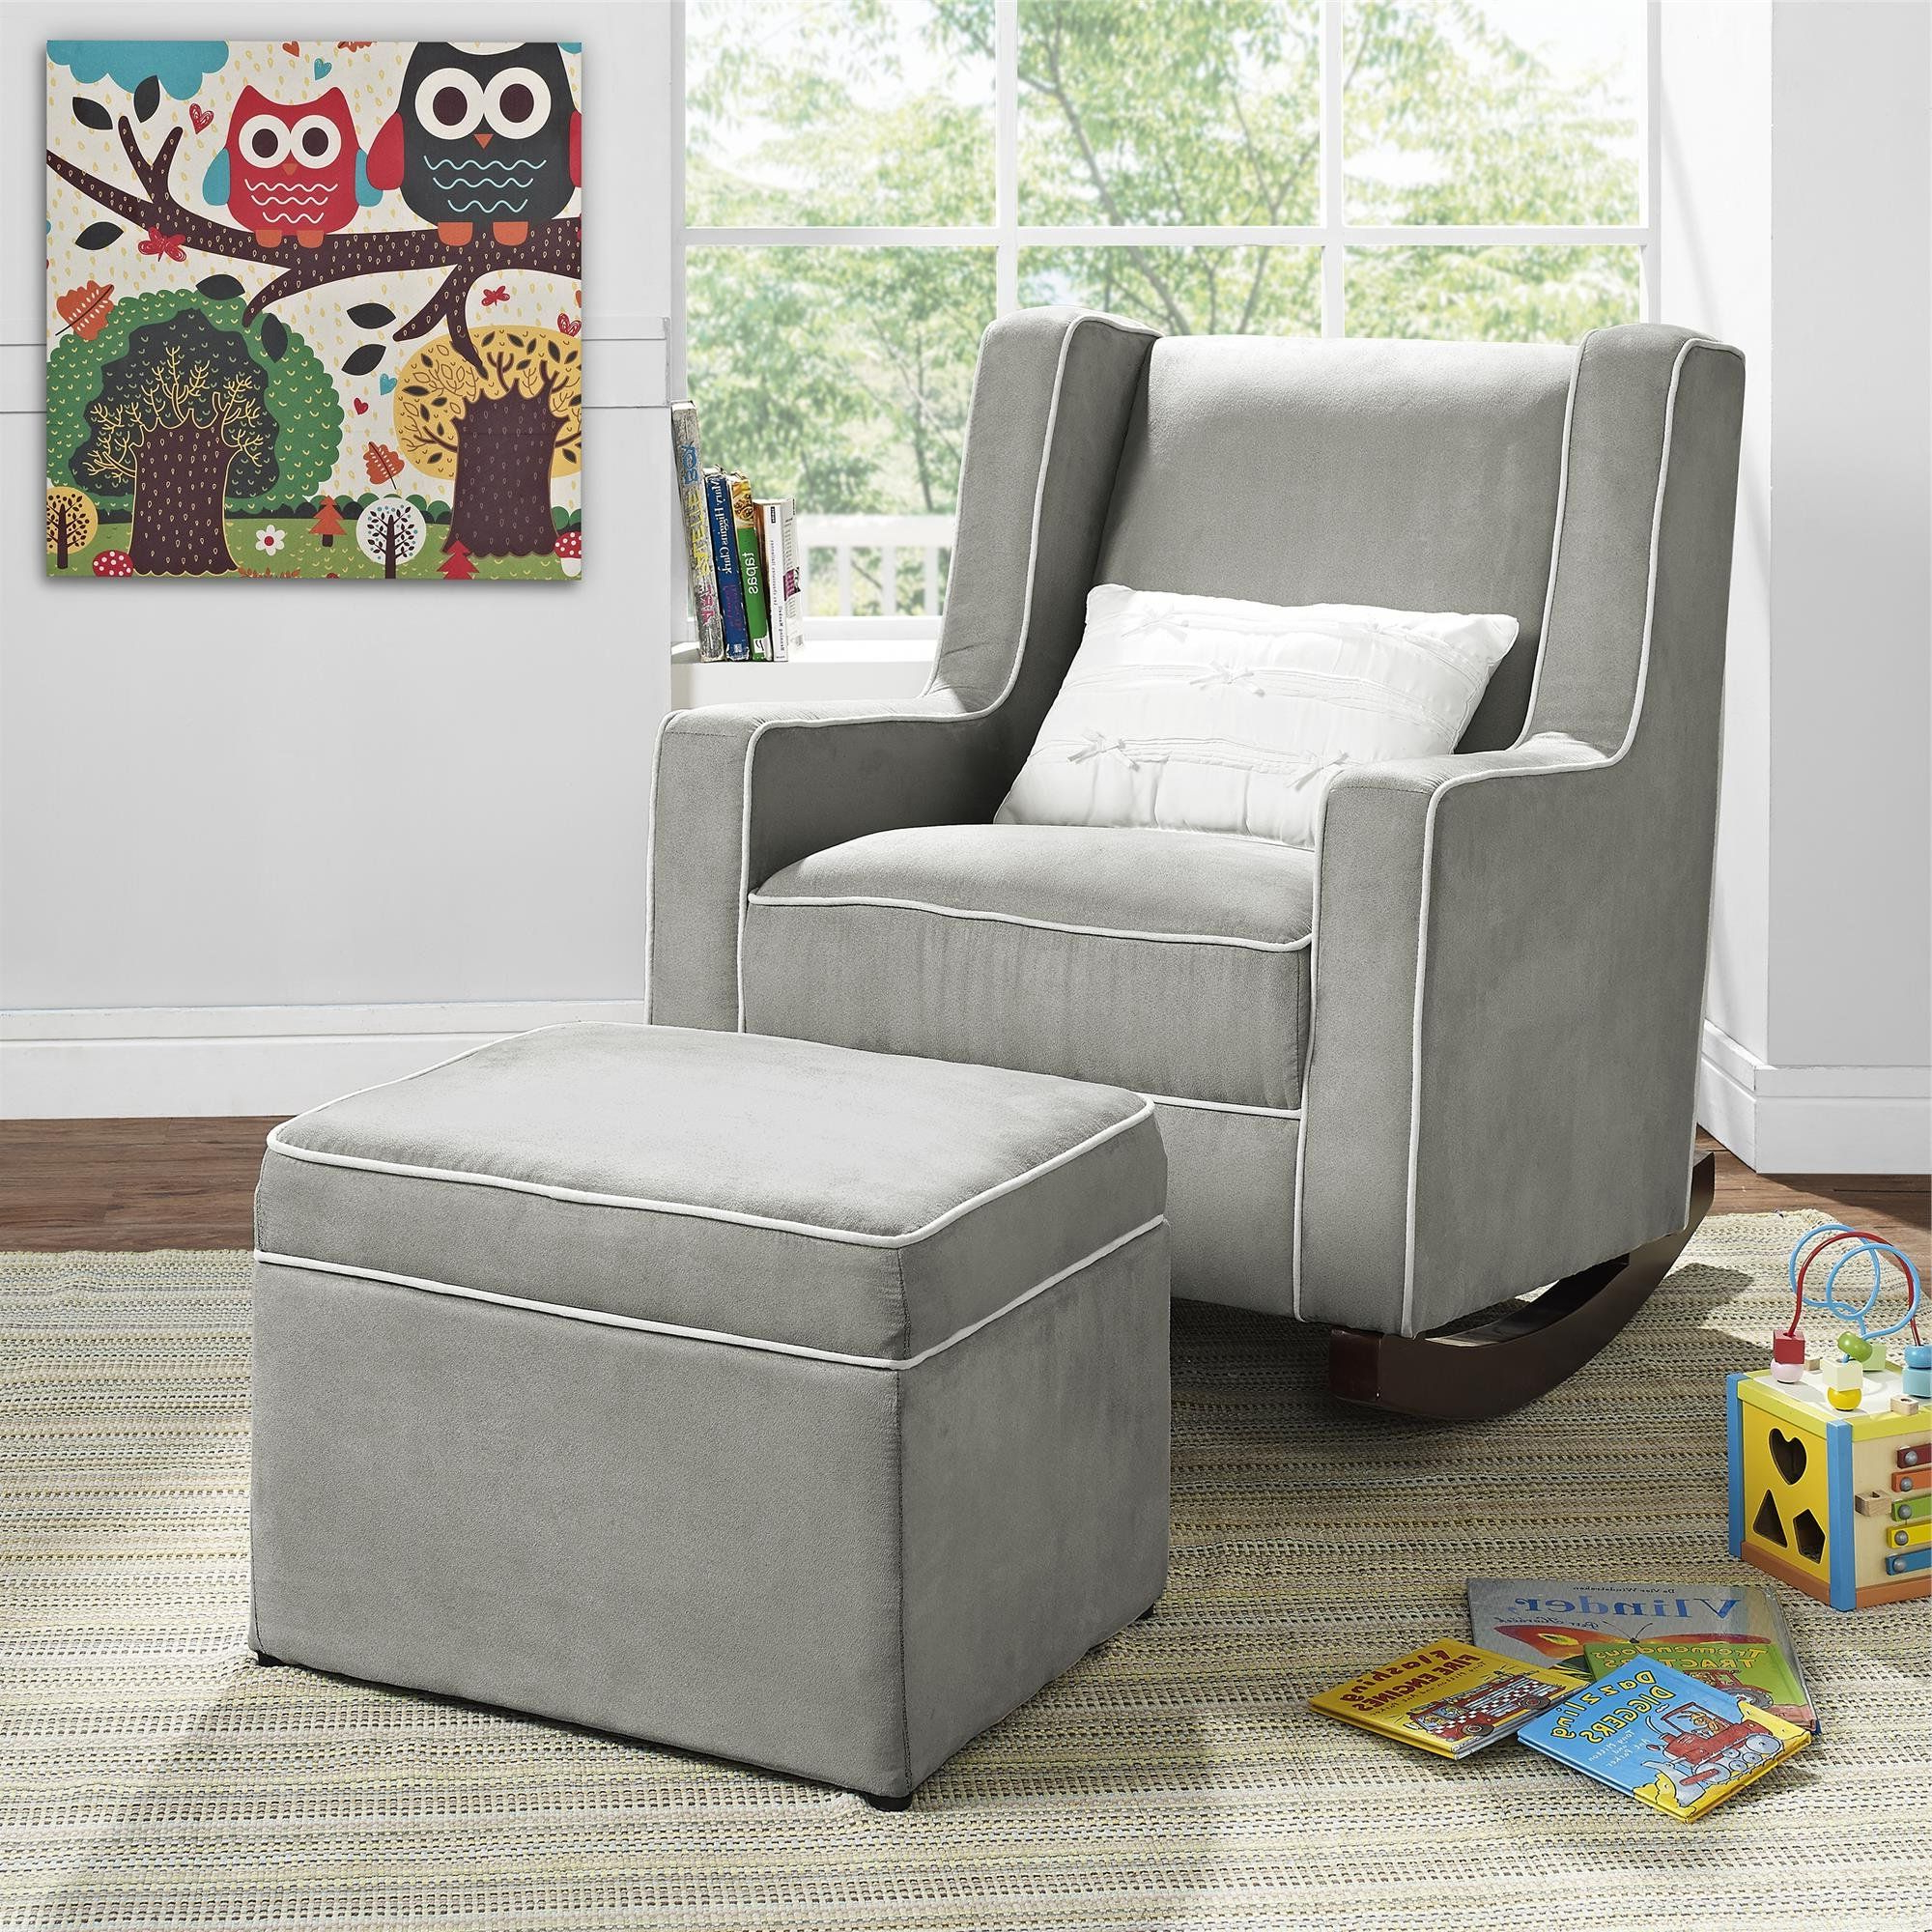 Well Liked Baby Relax Abby Rocker Gray Color: One Color >>> Check Out This Throughout Abbey Swivel Glider Recliners (View 20 of 20)